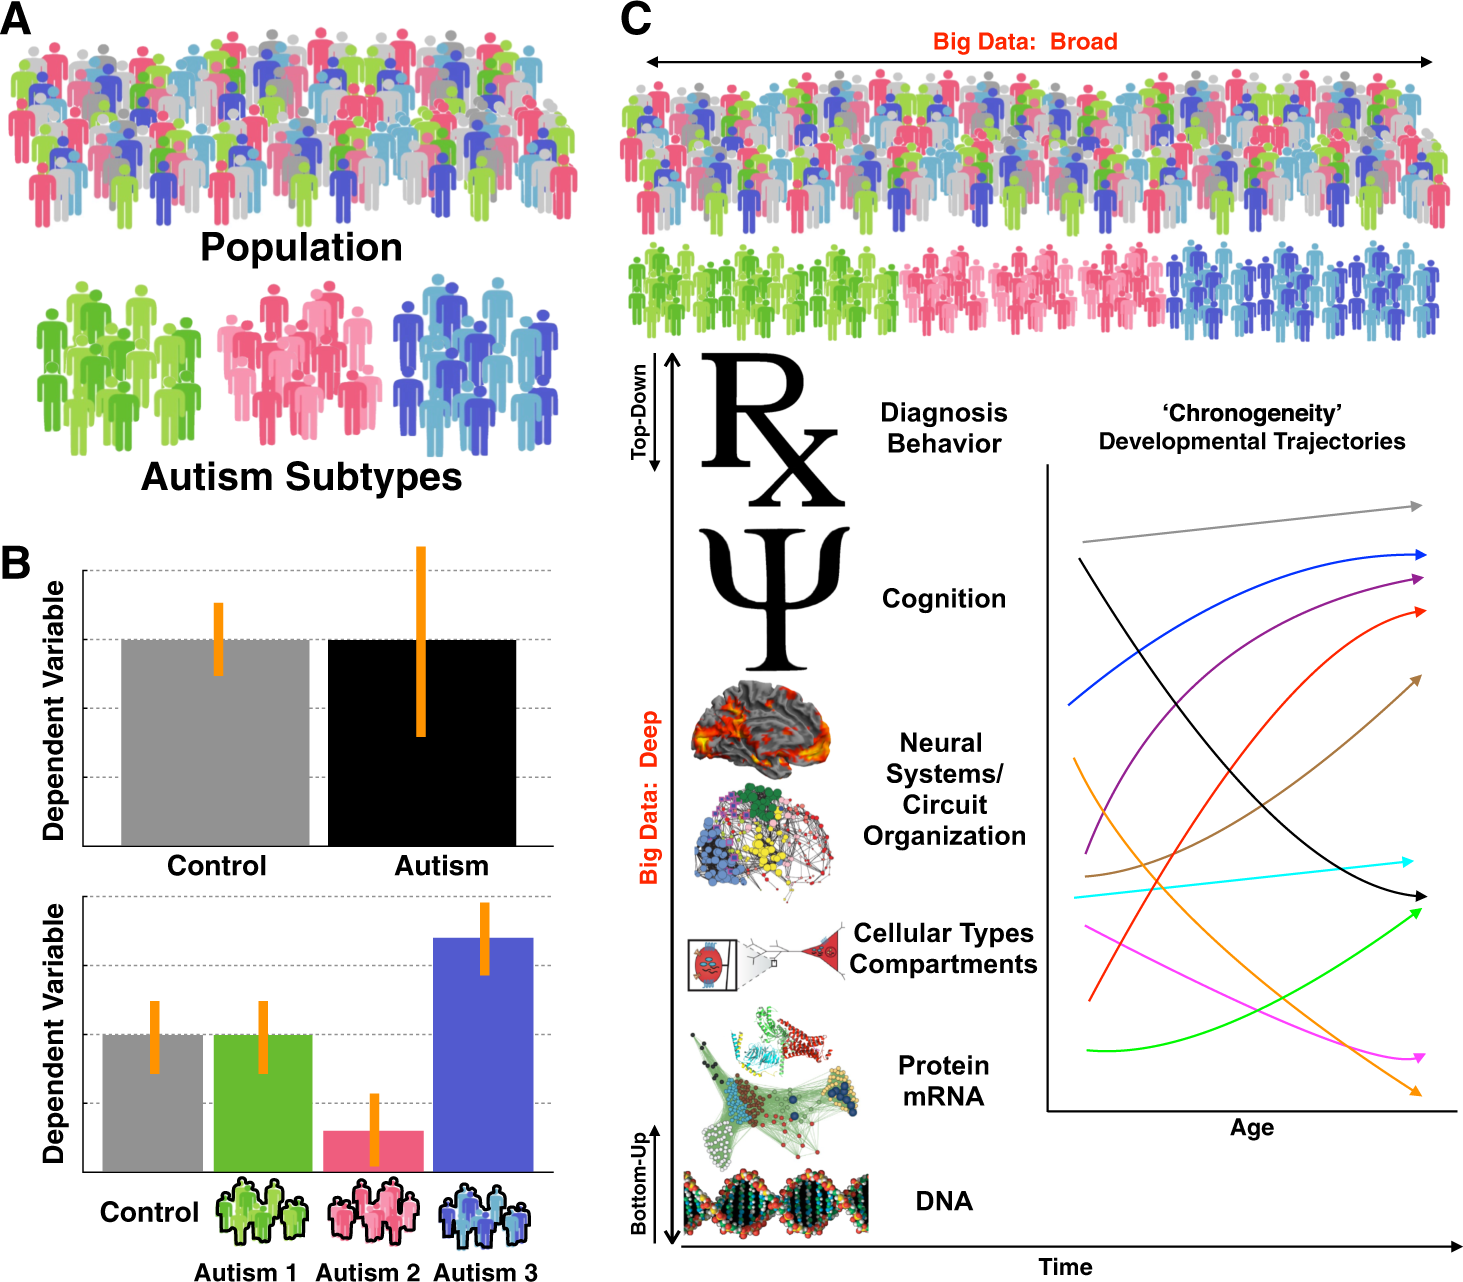 Autisms Full Spectrum >> Big Data Approaches To Decomposing Heterogeneity Across The Autism